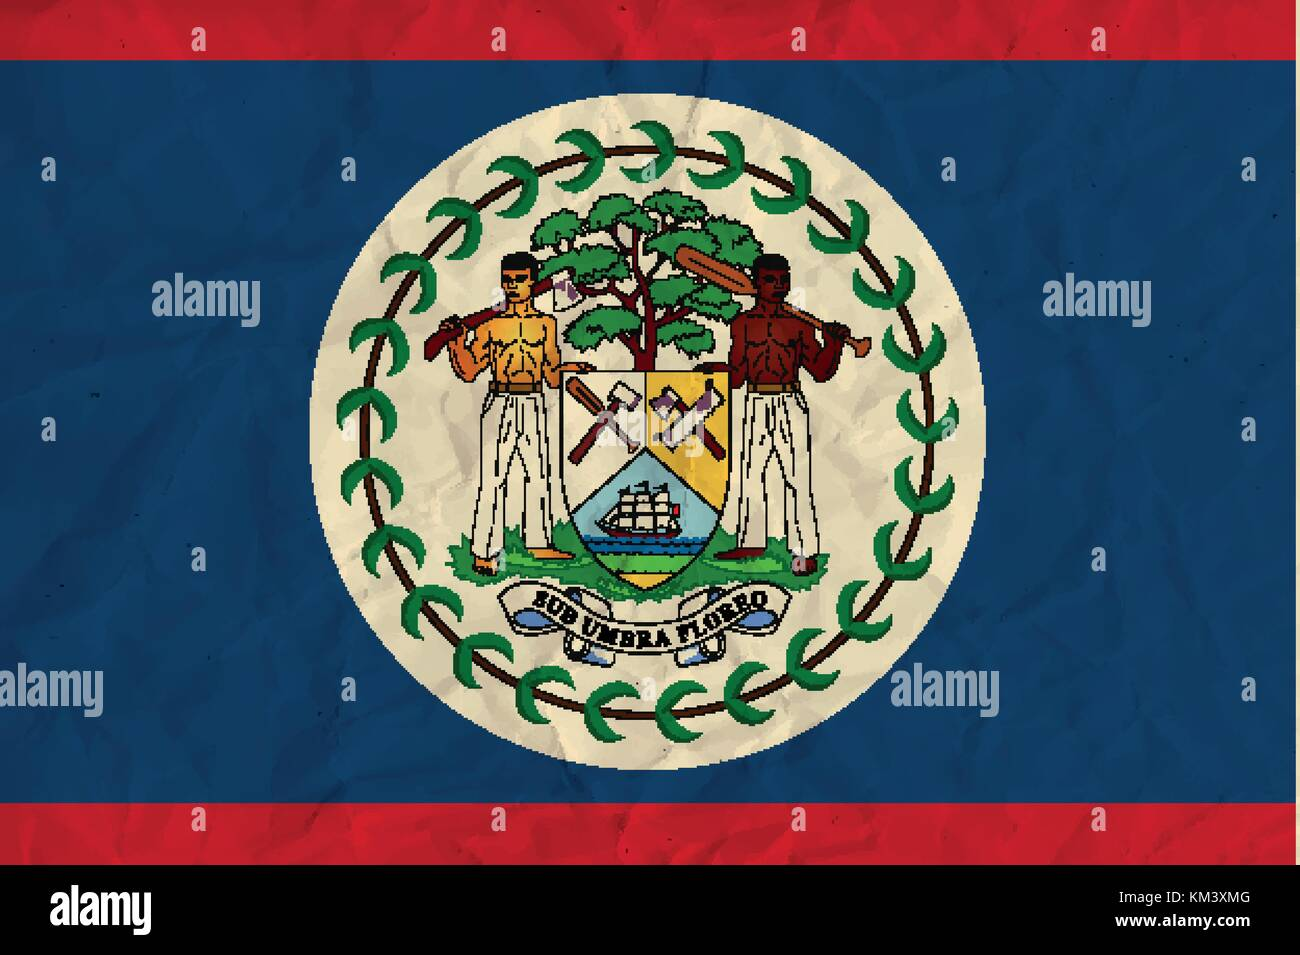 Official flag of belize stock photos official flag of belize belize paper flag stock image biocorpaavc Image collections